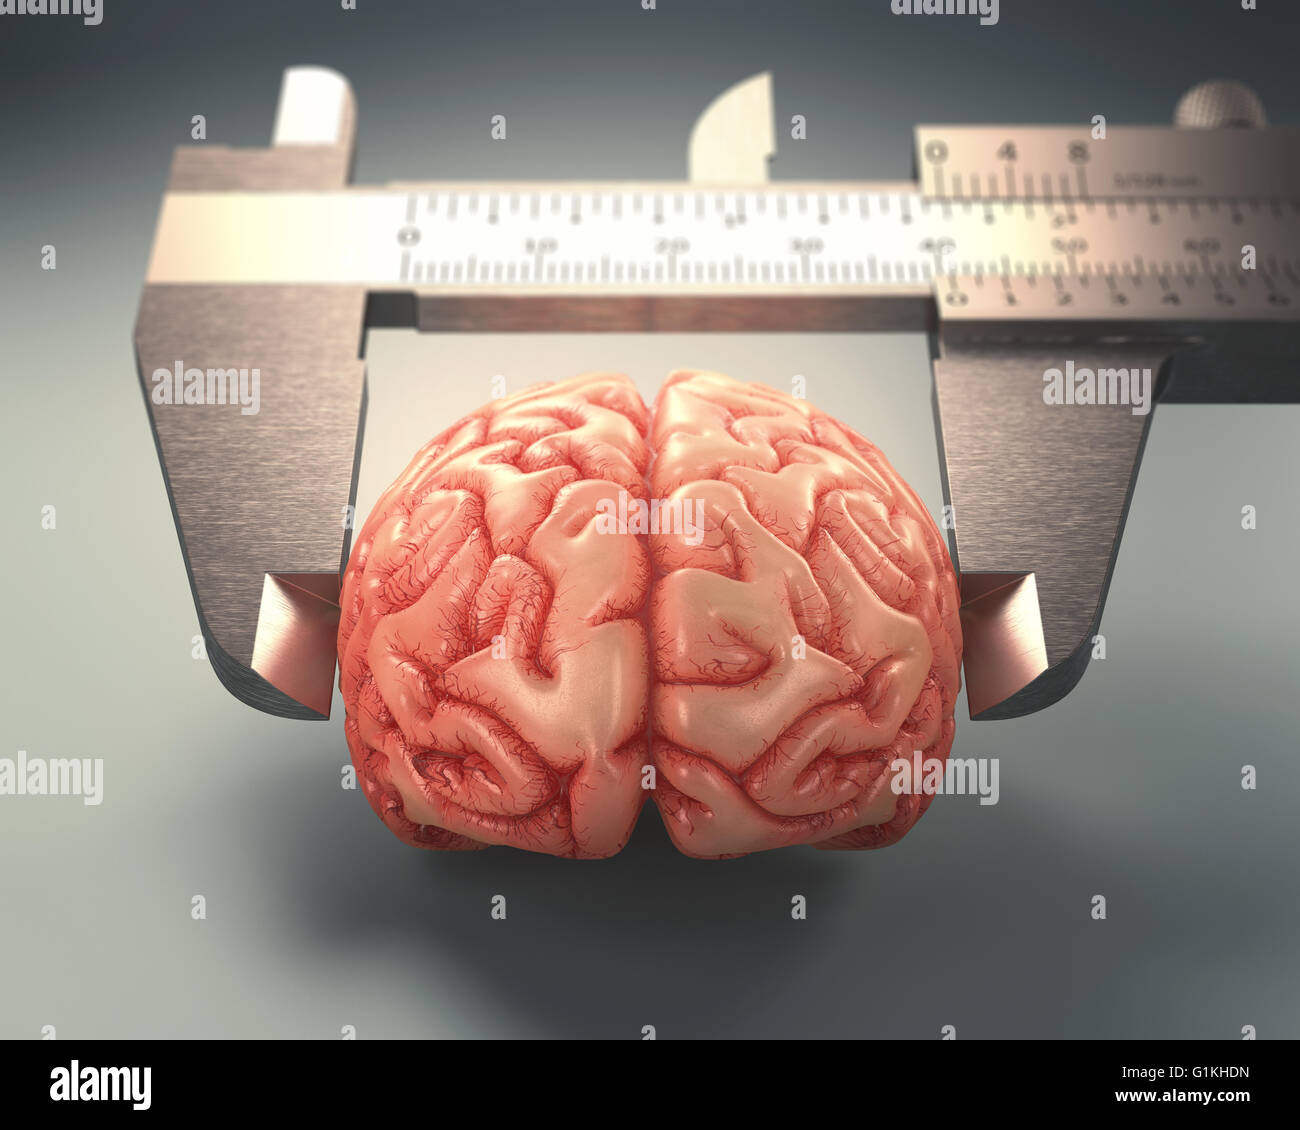 Caliper ruler measuring a human brain. Image concept of differences in IQs. - Stock Image